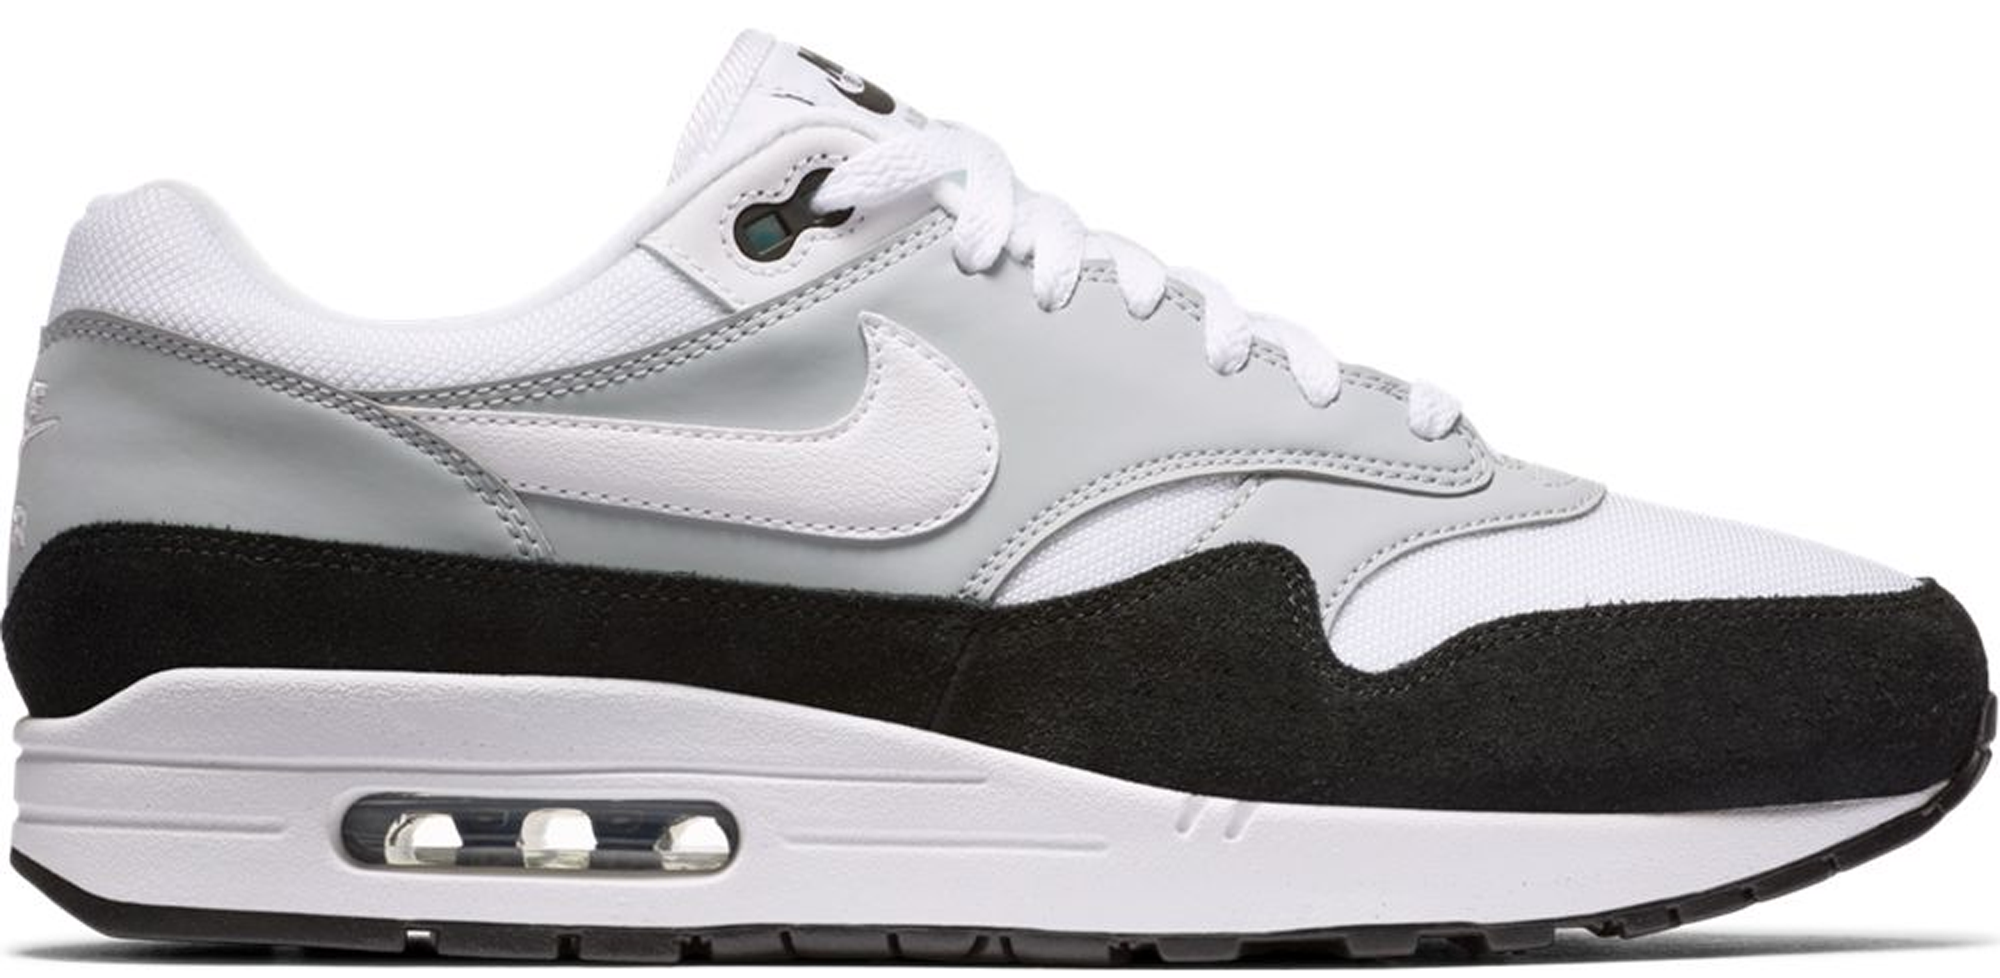 online store 54d07 7e375 ... italy buy nike air max 1 shoes deadstock sneakers fd720 272a3